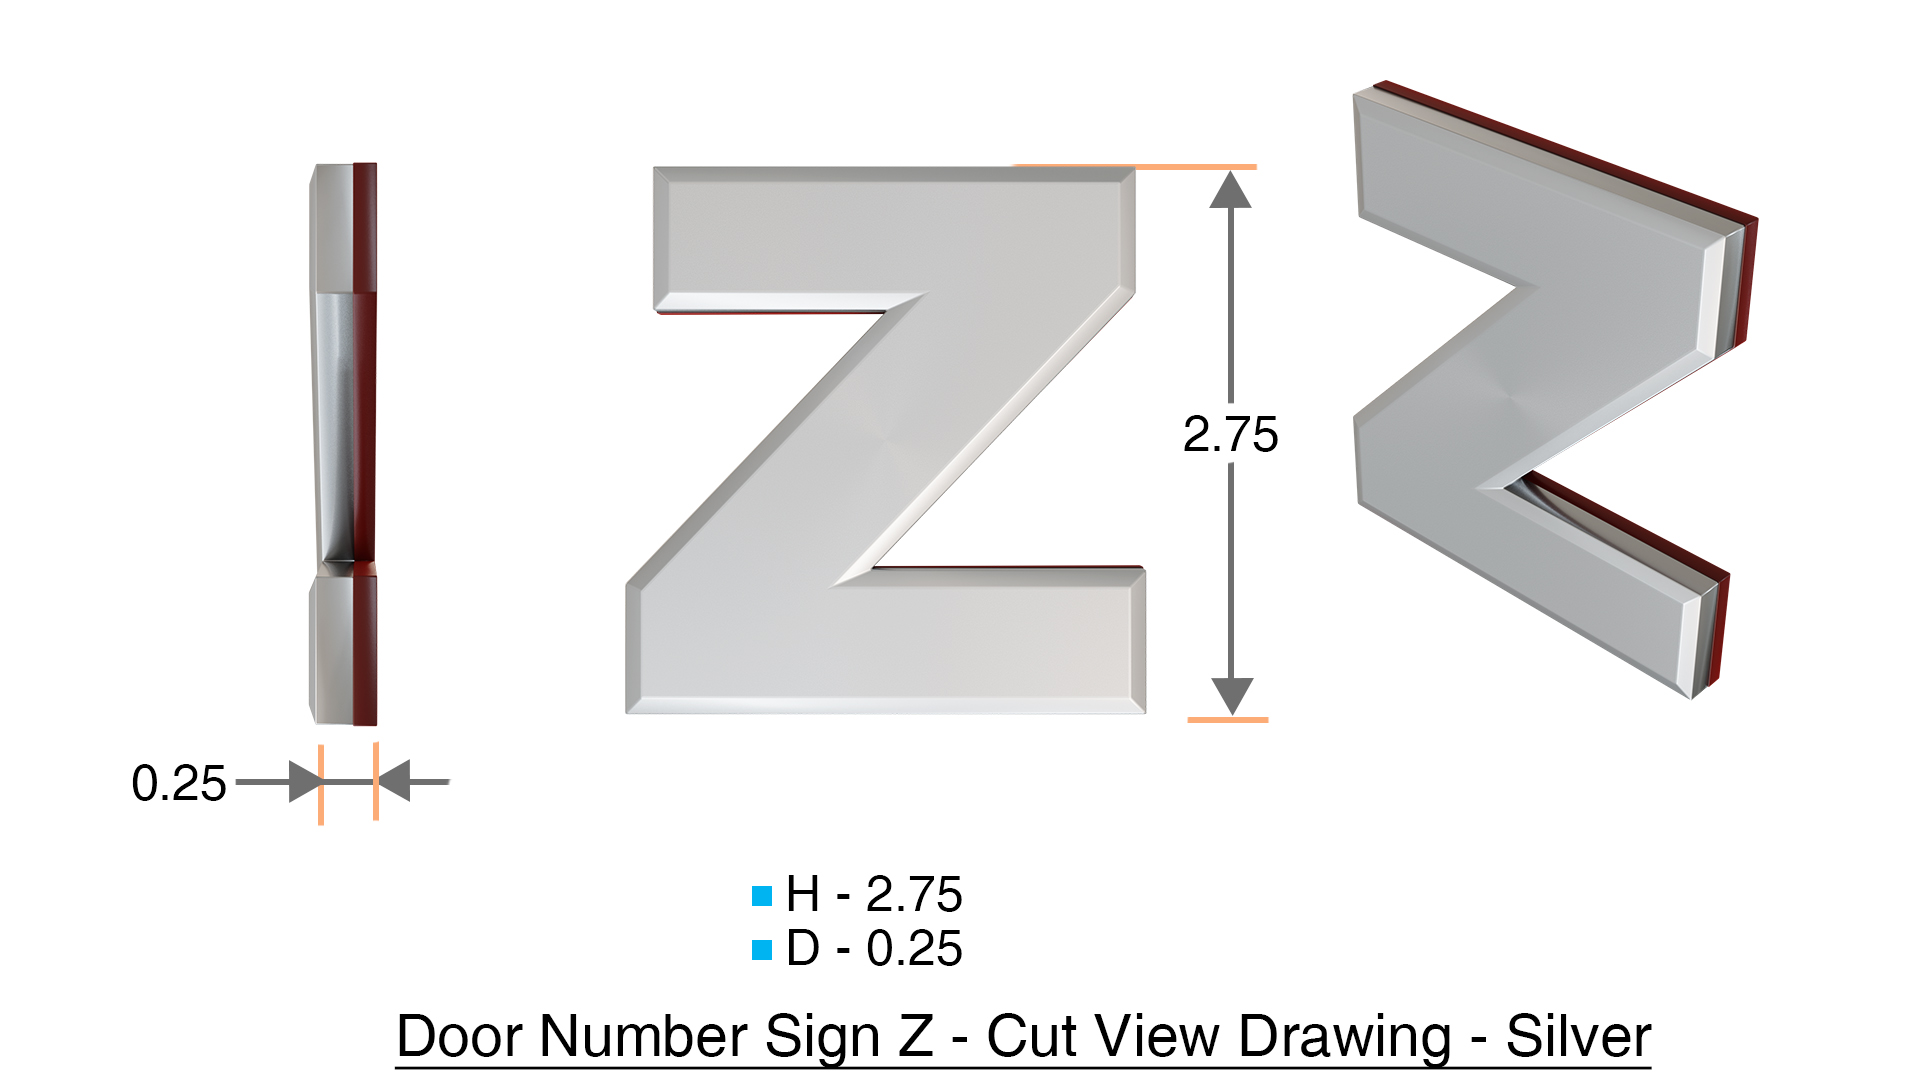 z- APARTMENT, DOOR AND MAILBOX LETTER Z SIGN - LETTER SIGN Z- SILVER (HIGH  QUALITY PLASTIC DOOR SIGNS 0.25 THICK)